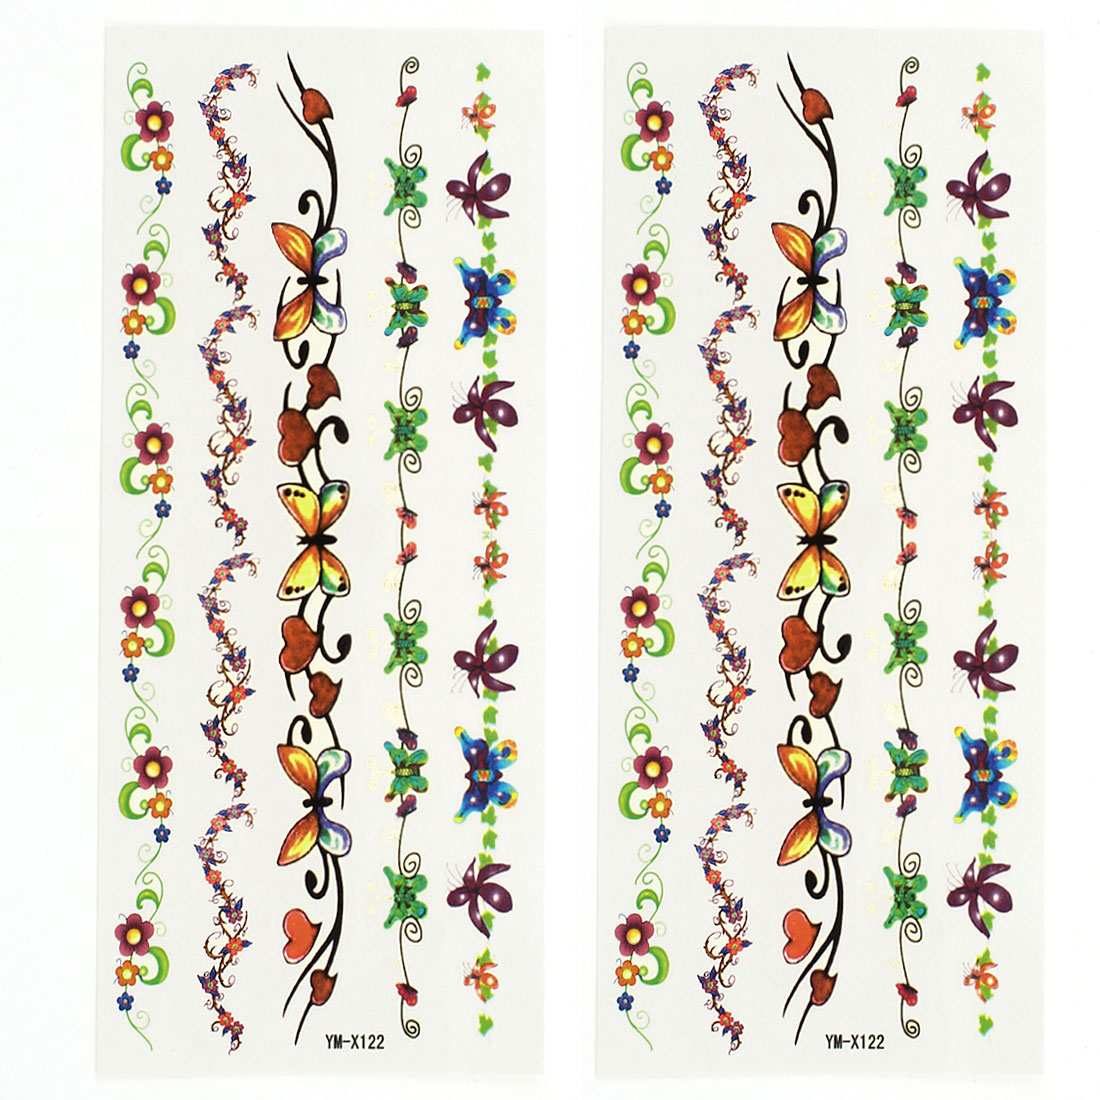 2 Sheets Flower Vine Body Art Sticker Temporary Tattoos Multicolor